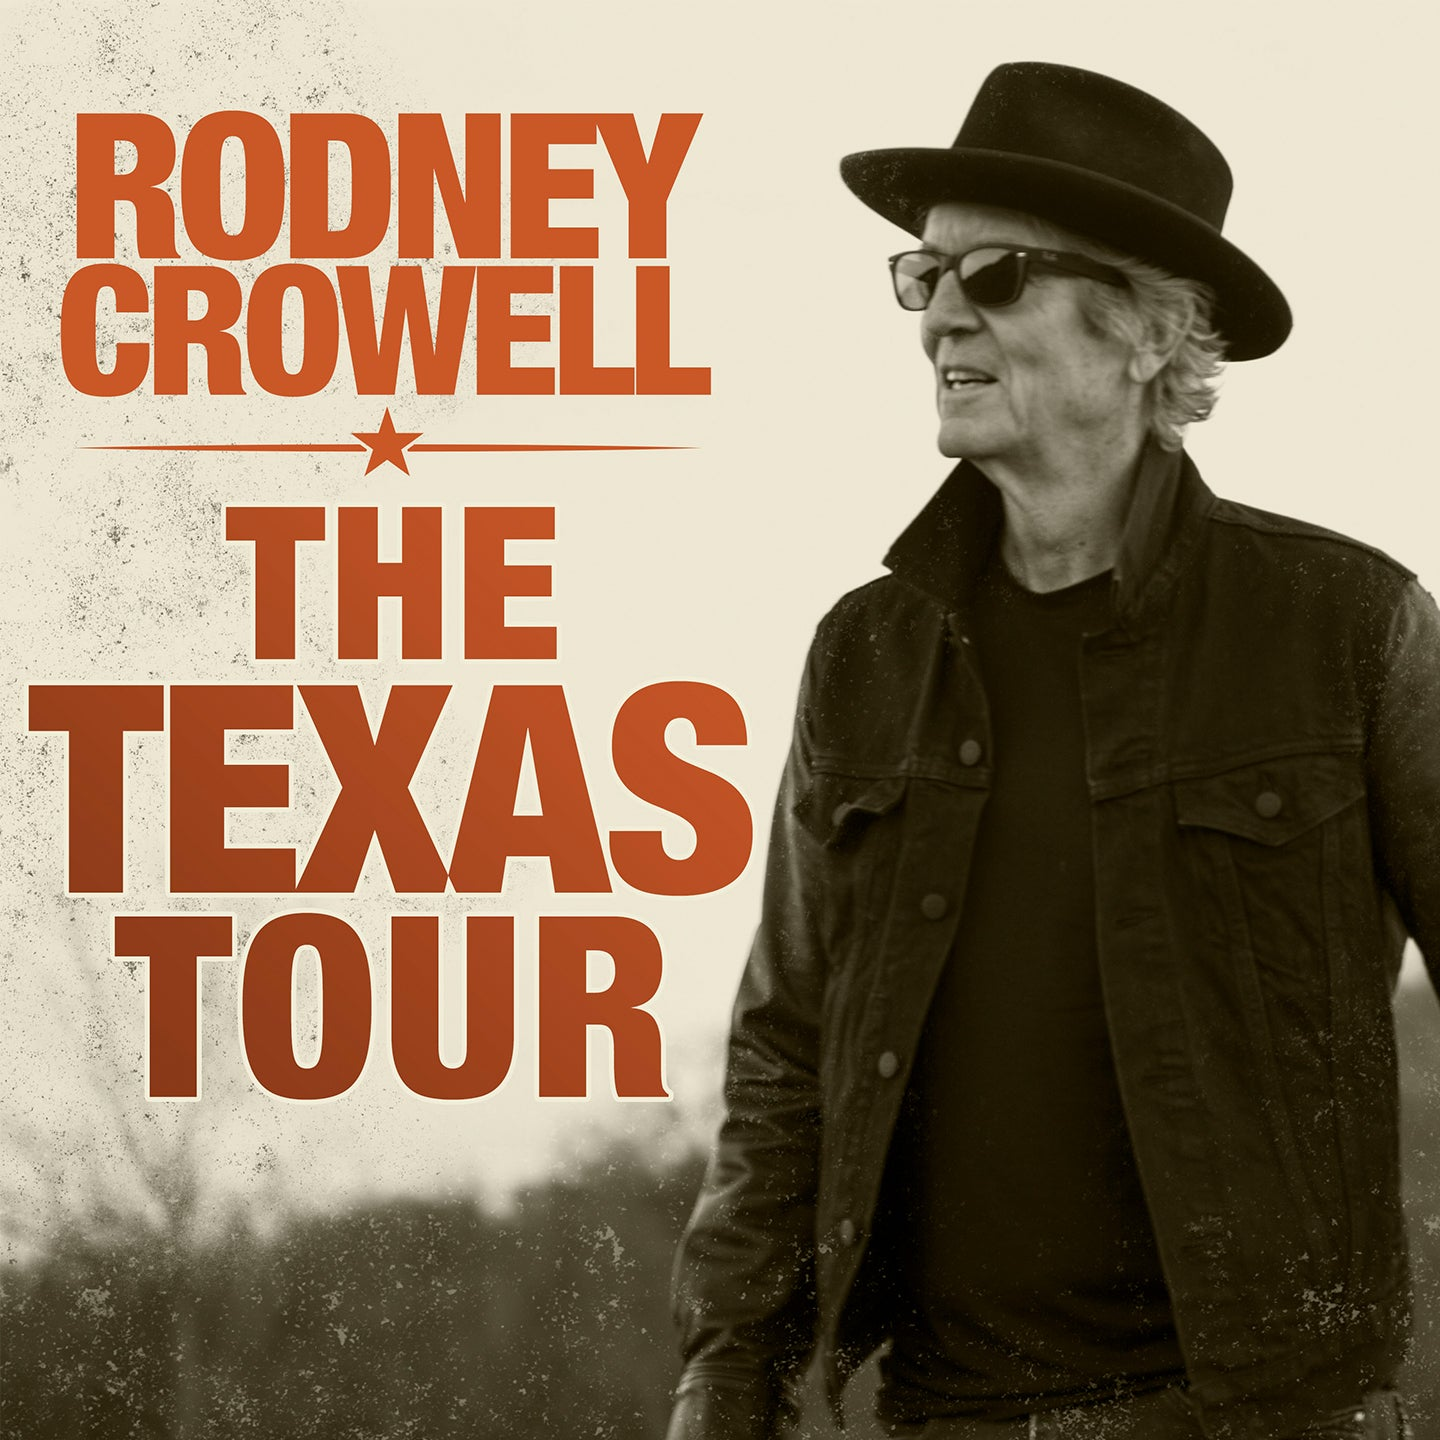 Rodney Crowell: The TEXAS Tour